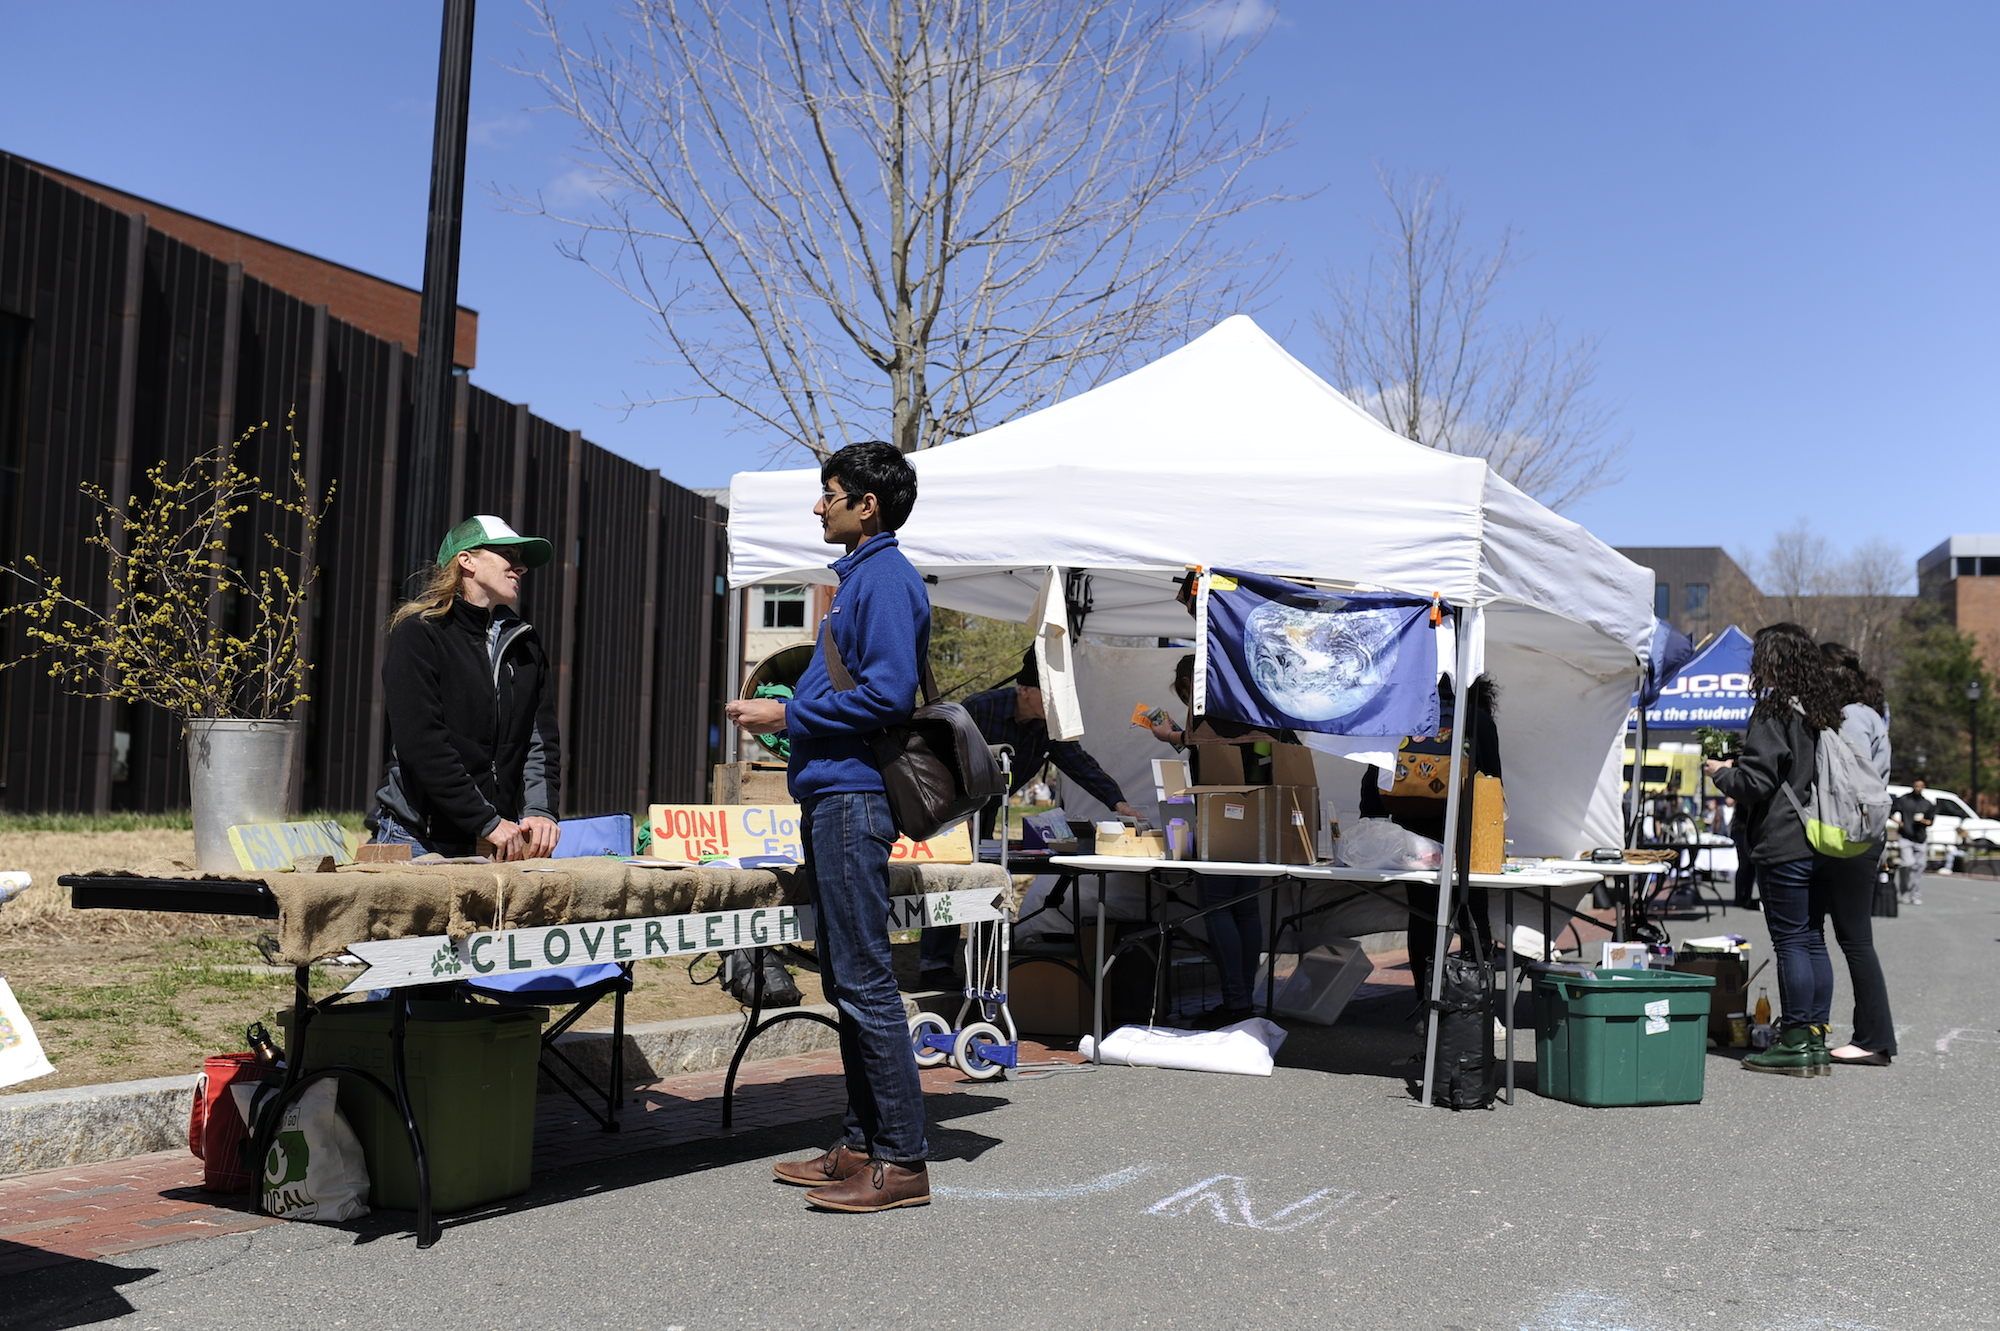 Students gather to interact with a multitude of eco-friendly exhibitors and vendors on Earth Day, April 19, 2016. The event hosts an outdoor zero-waste barbecue catered by Dining Services featuring vegan/vegetarian and sustainable food options. (Jason Jiang/The Daily Campus)